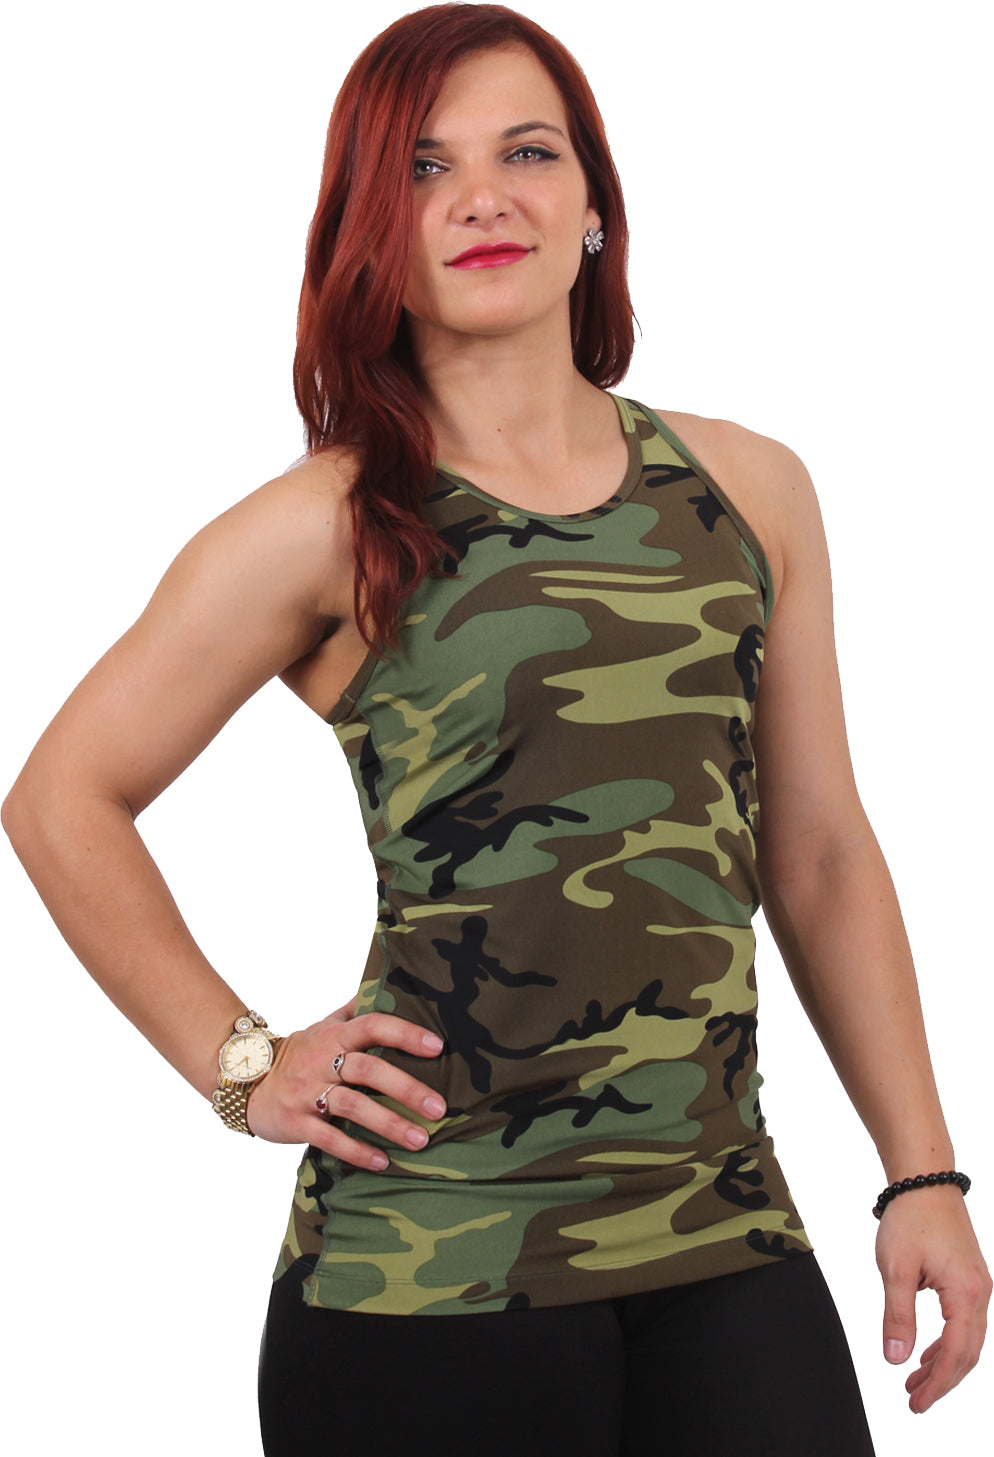 Woodland Camouflage - Womens Workout Performance Tank Top